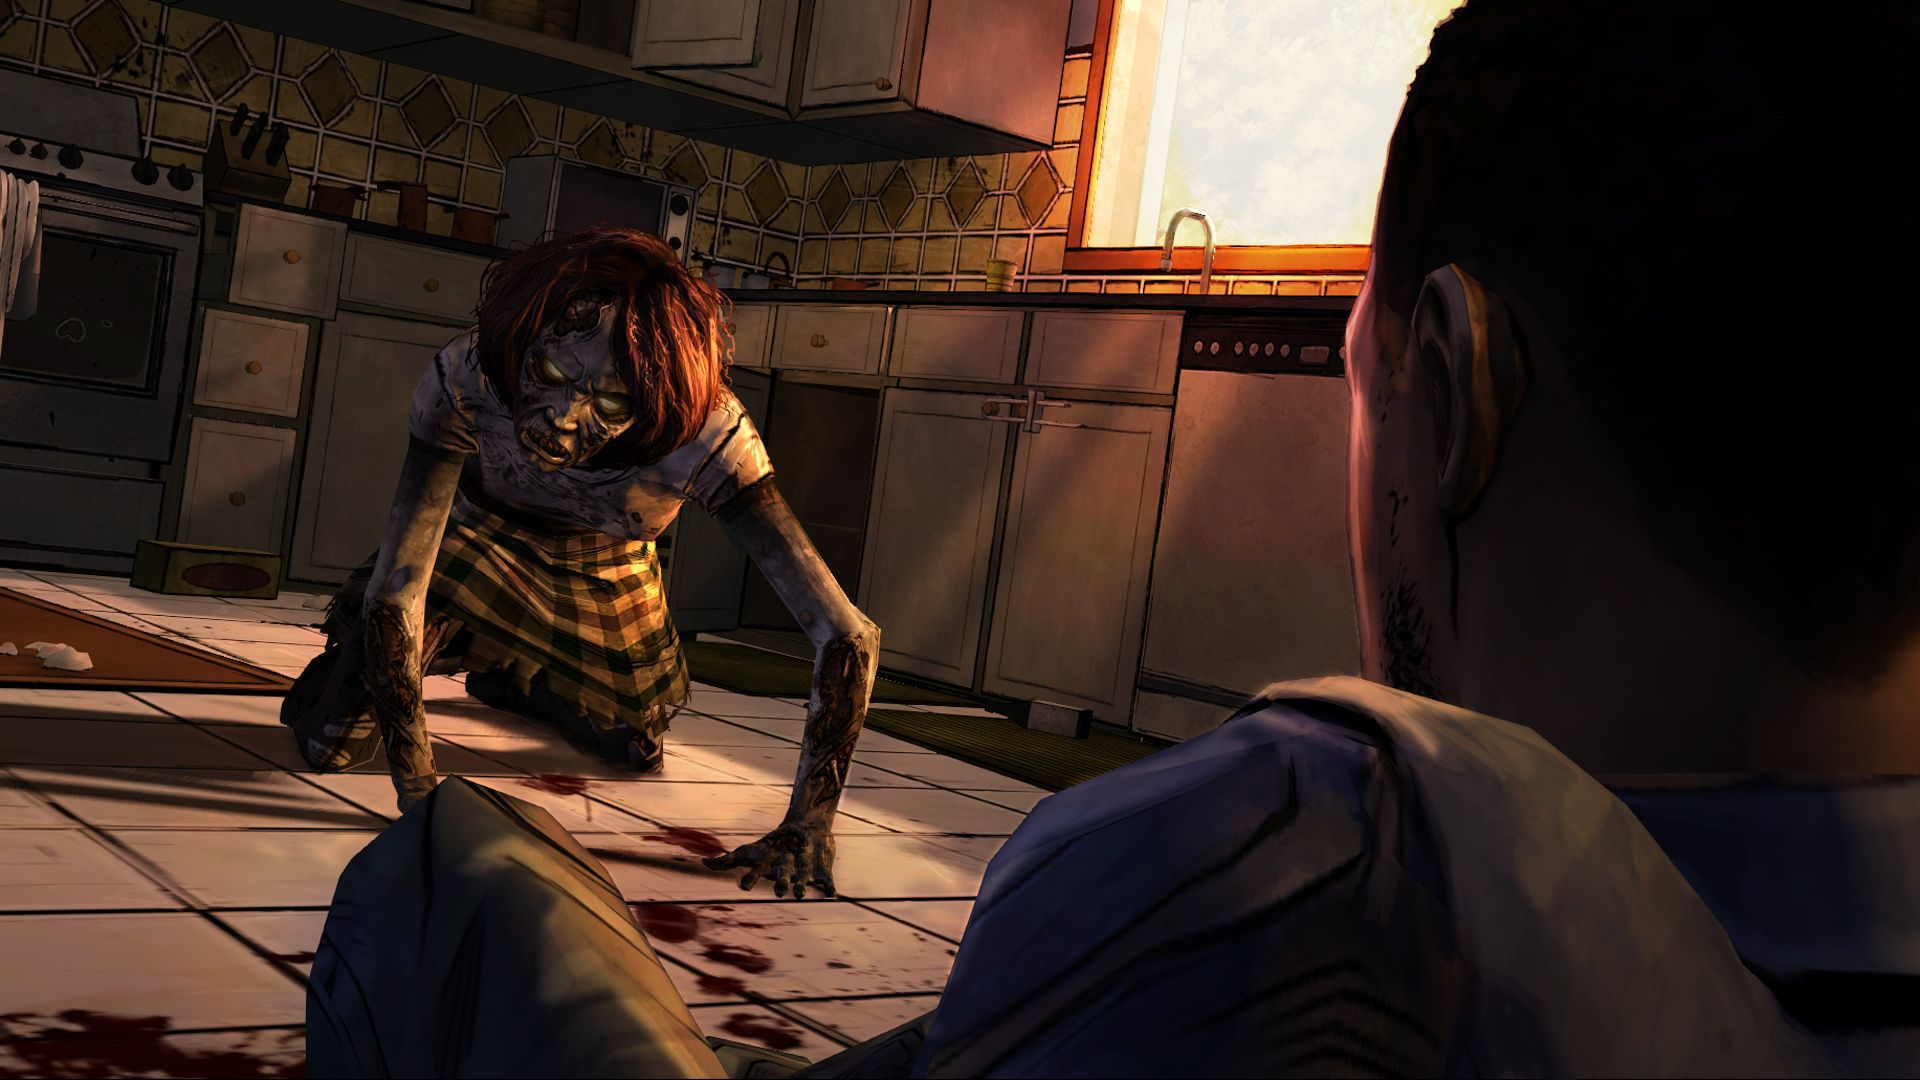 Pin by Hadi Zadeh on WD/BL style | The walking dead telltale